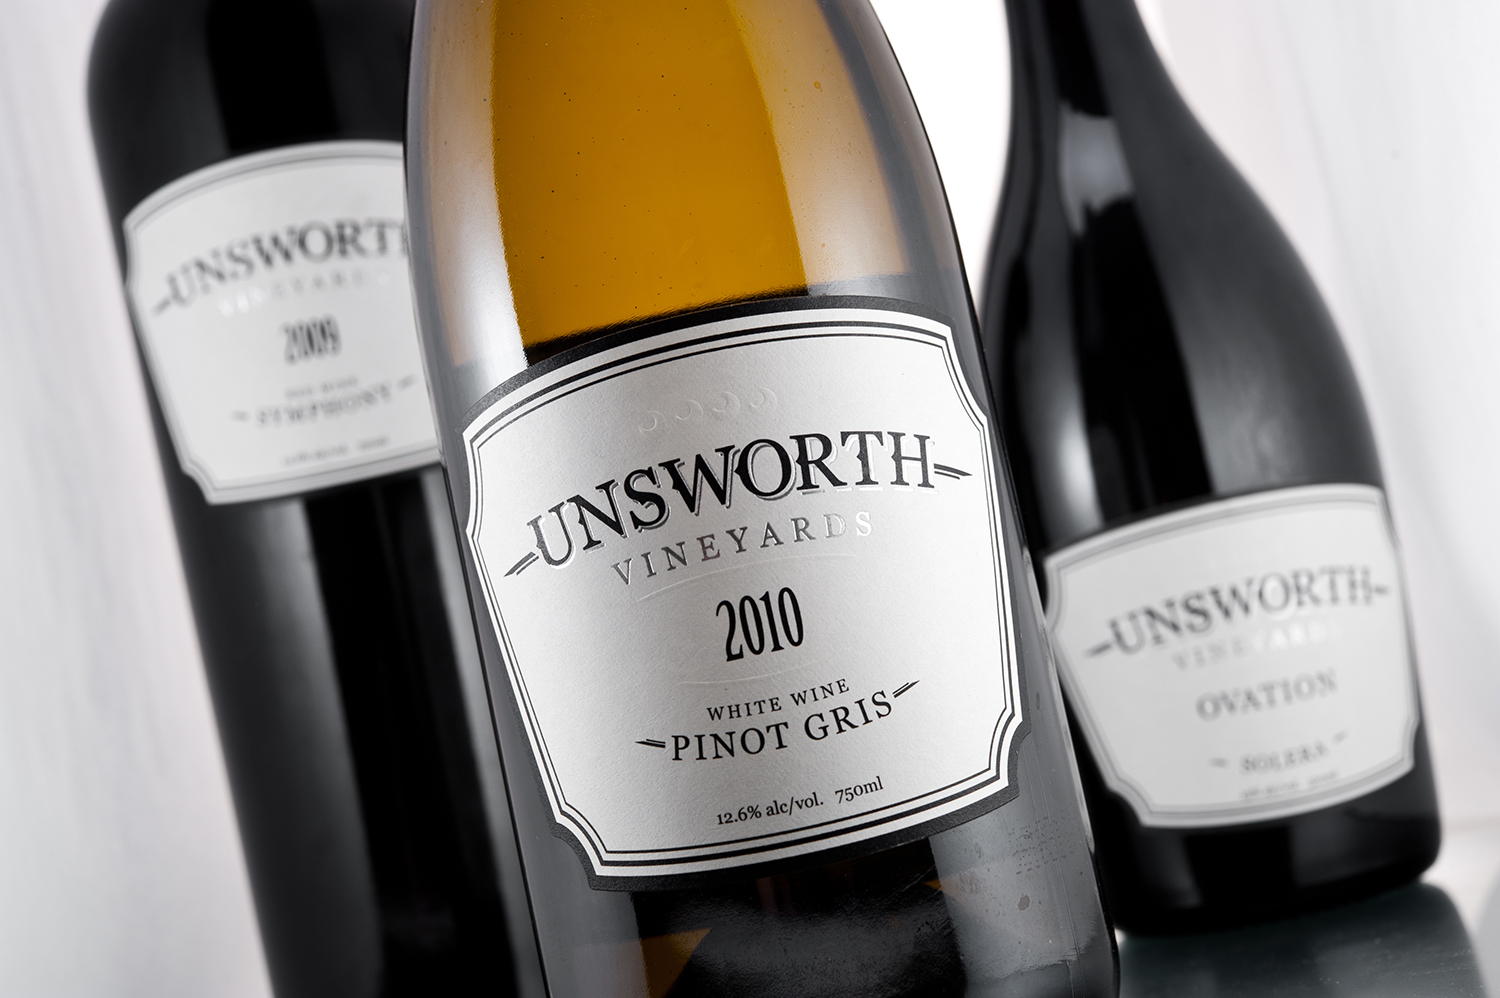 DSC_3895.jpgBranding and Packaging Design for Unsworth Vineyards